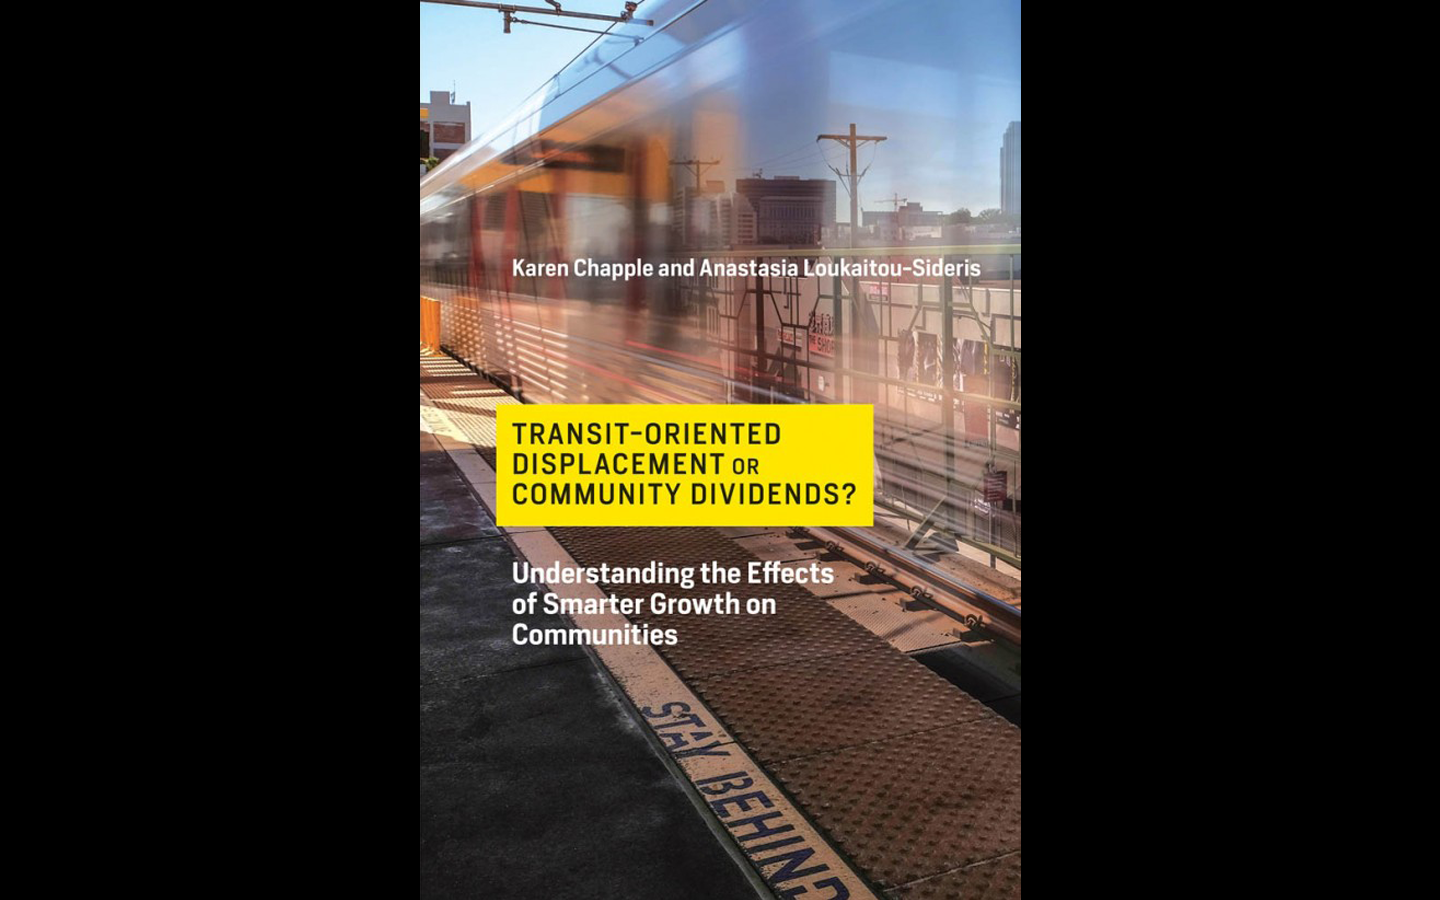 A translucent train passing through a station with a yellow rectangle and black text on the front.